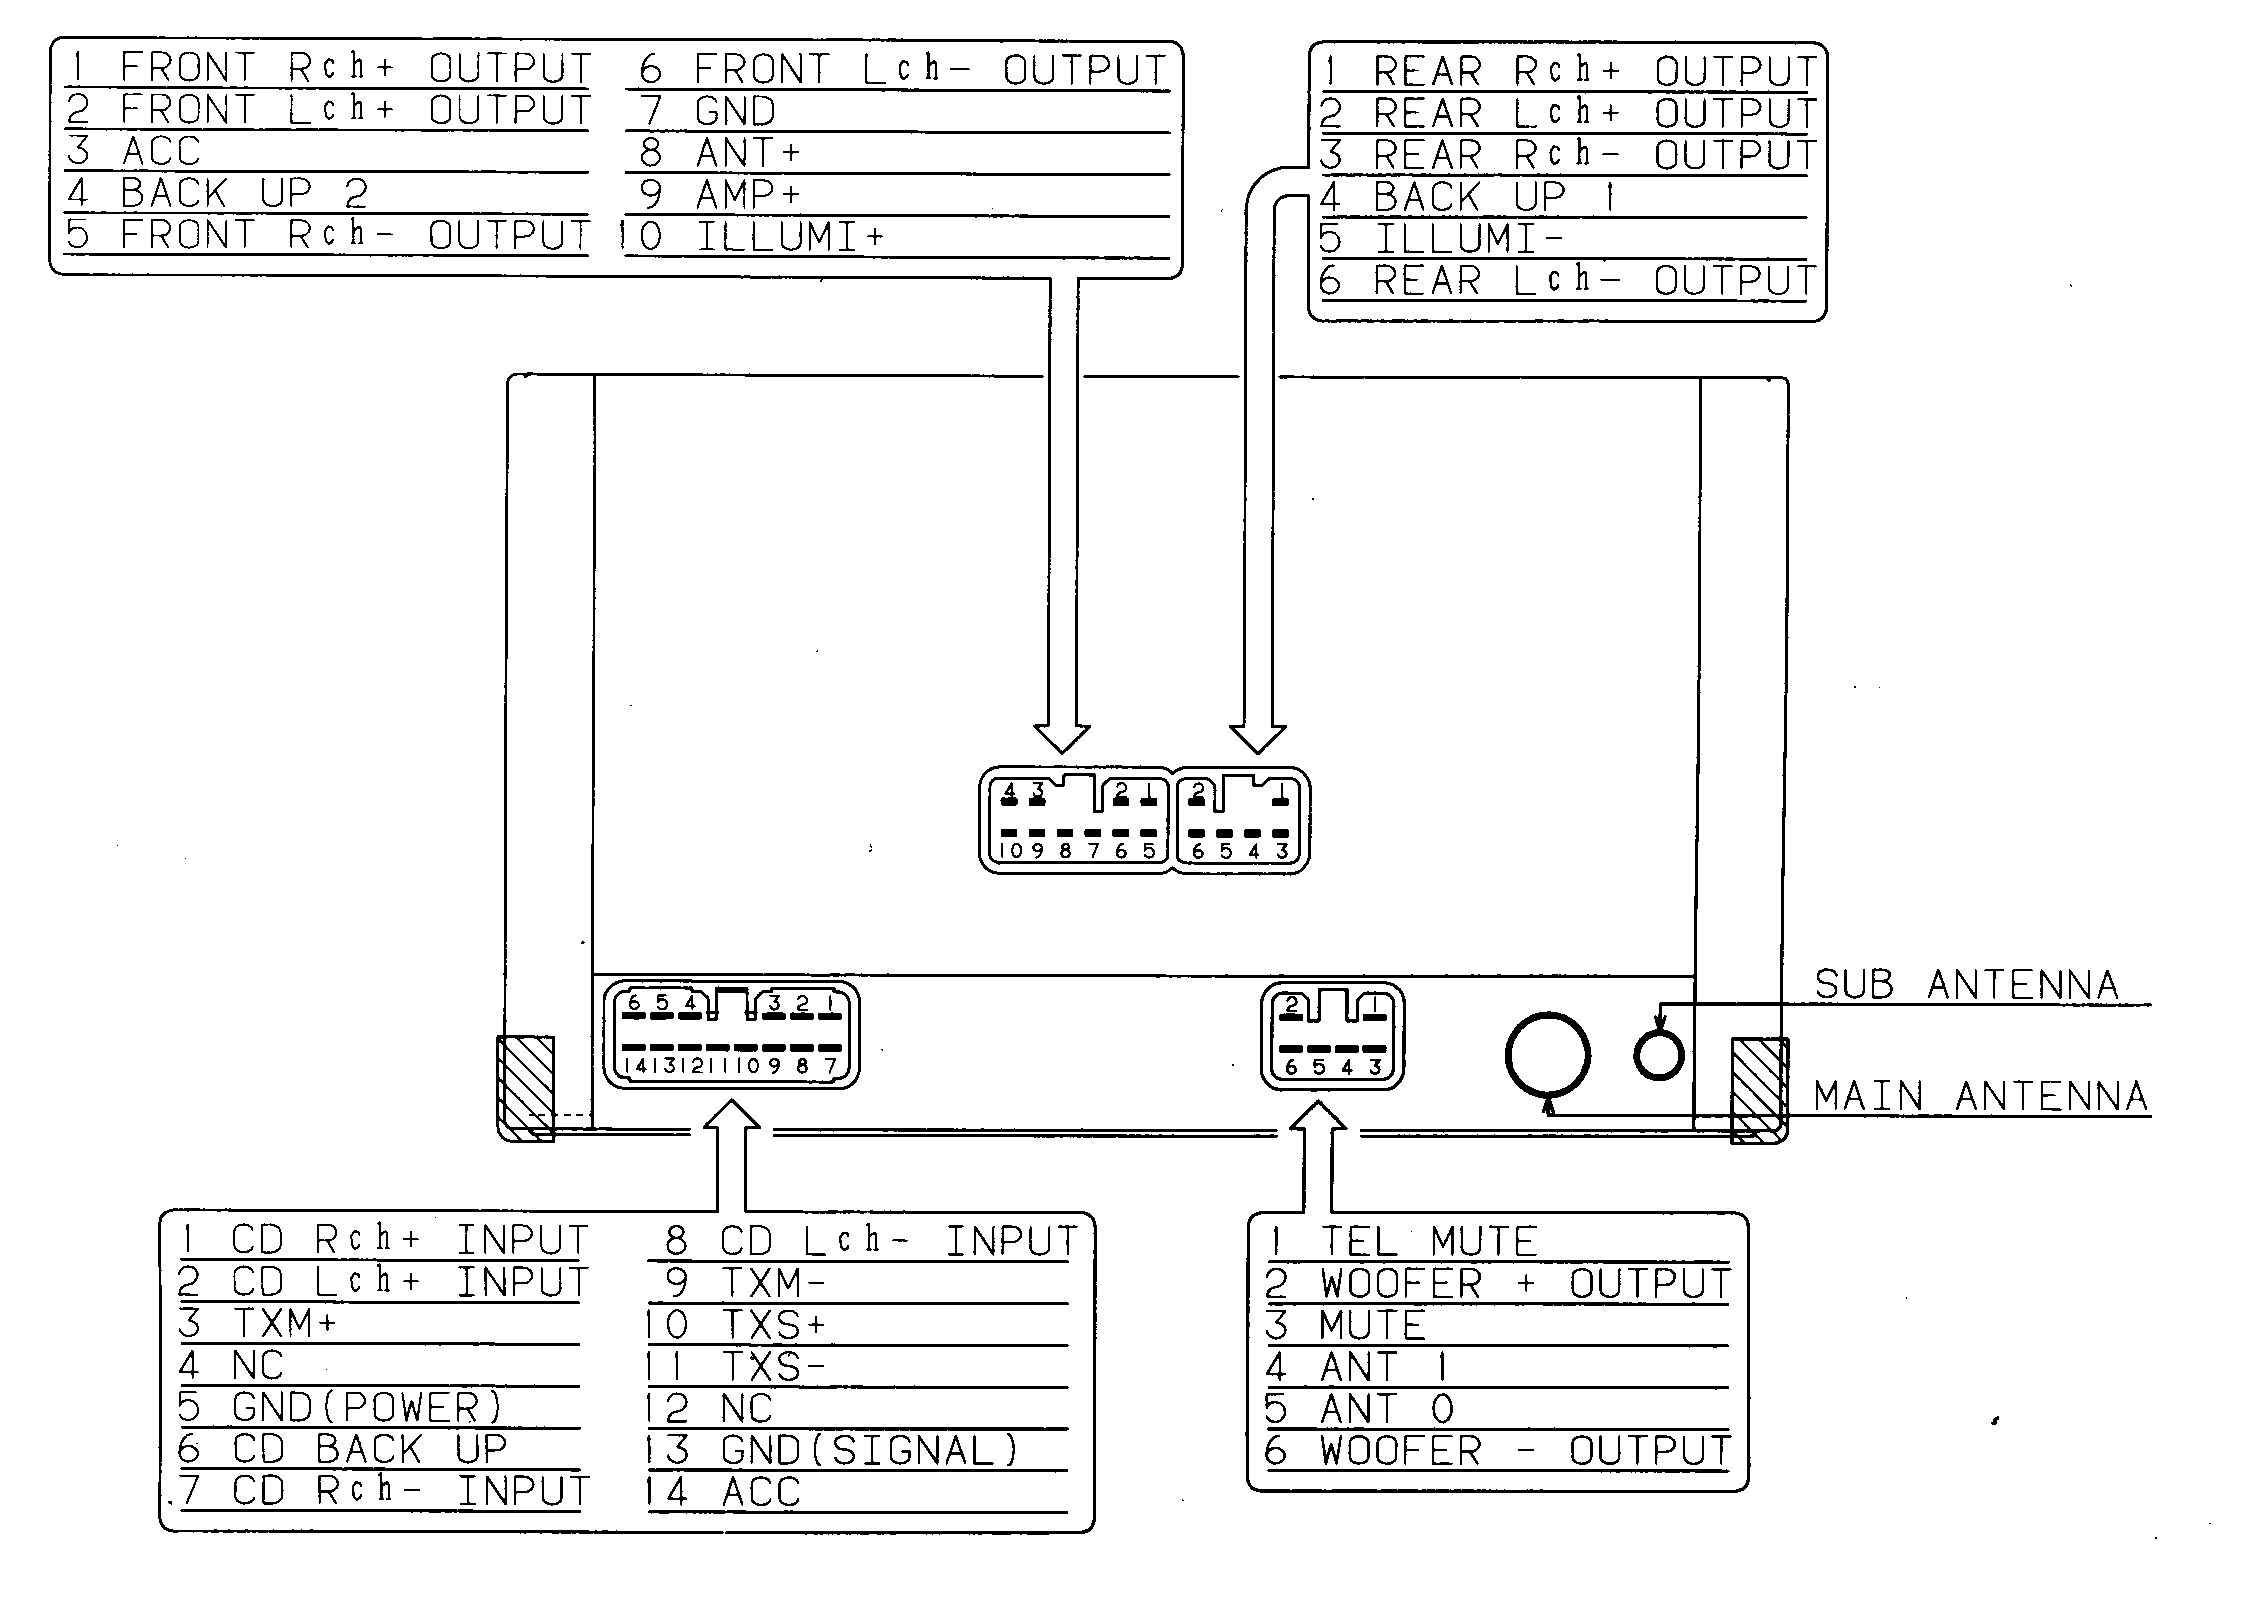 WireHarnessLexus121001 car audio wire diagram codes lexus factory car stereo repair wiring diagram for car audio at fashall.co